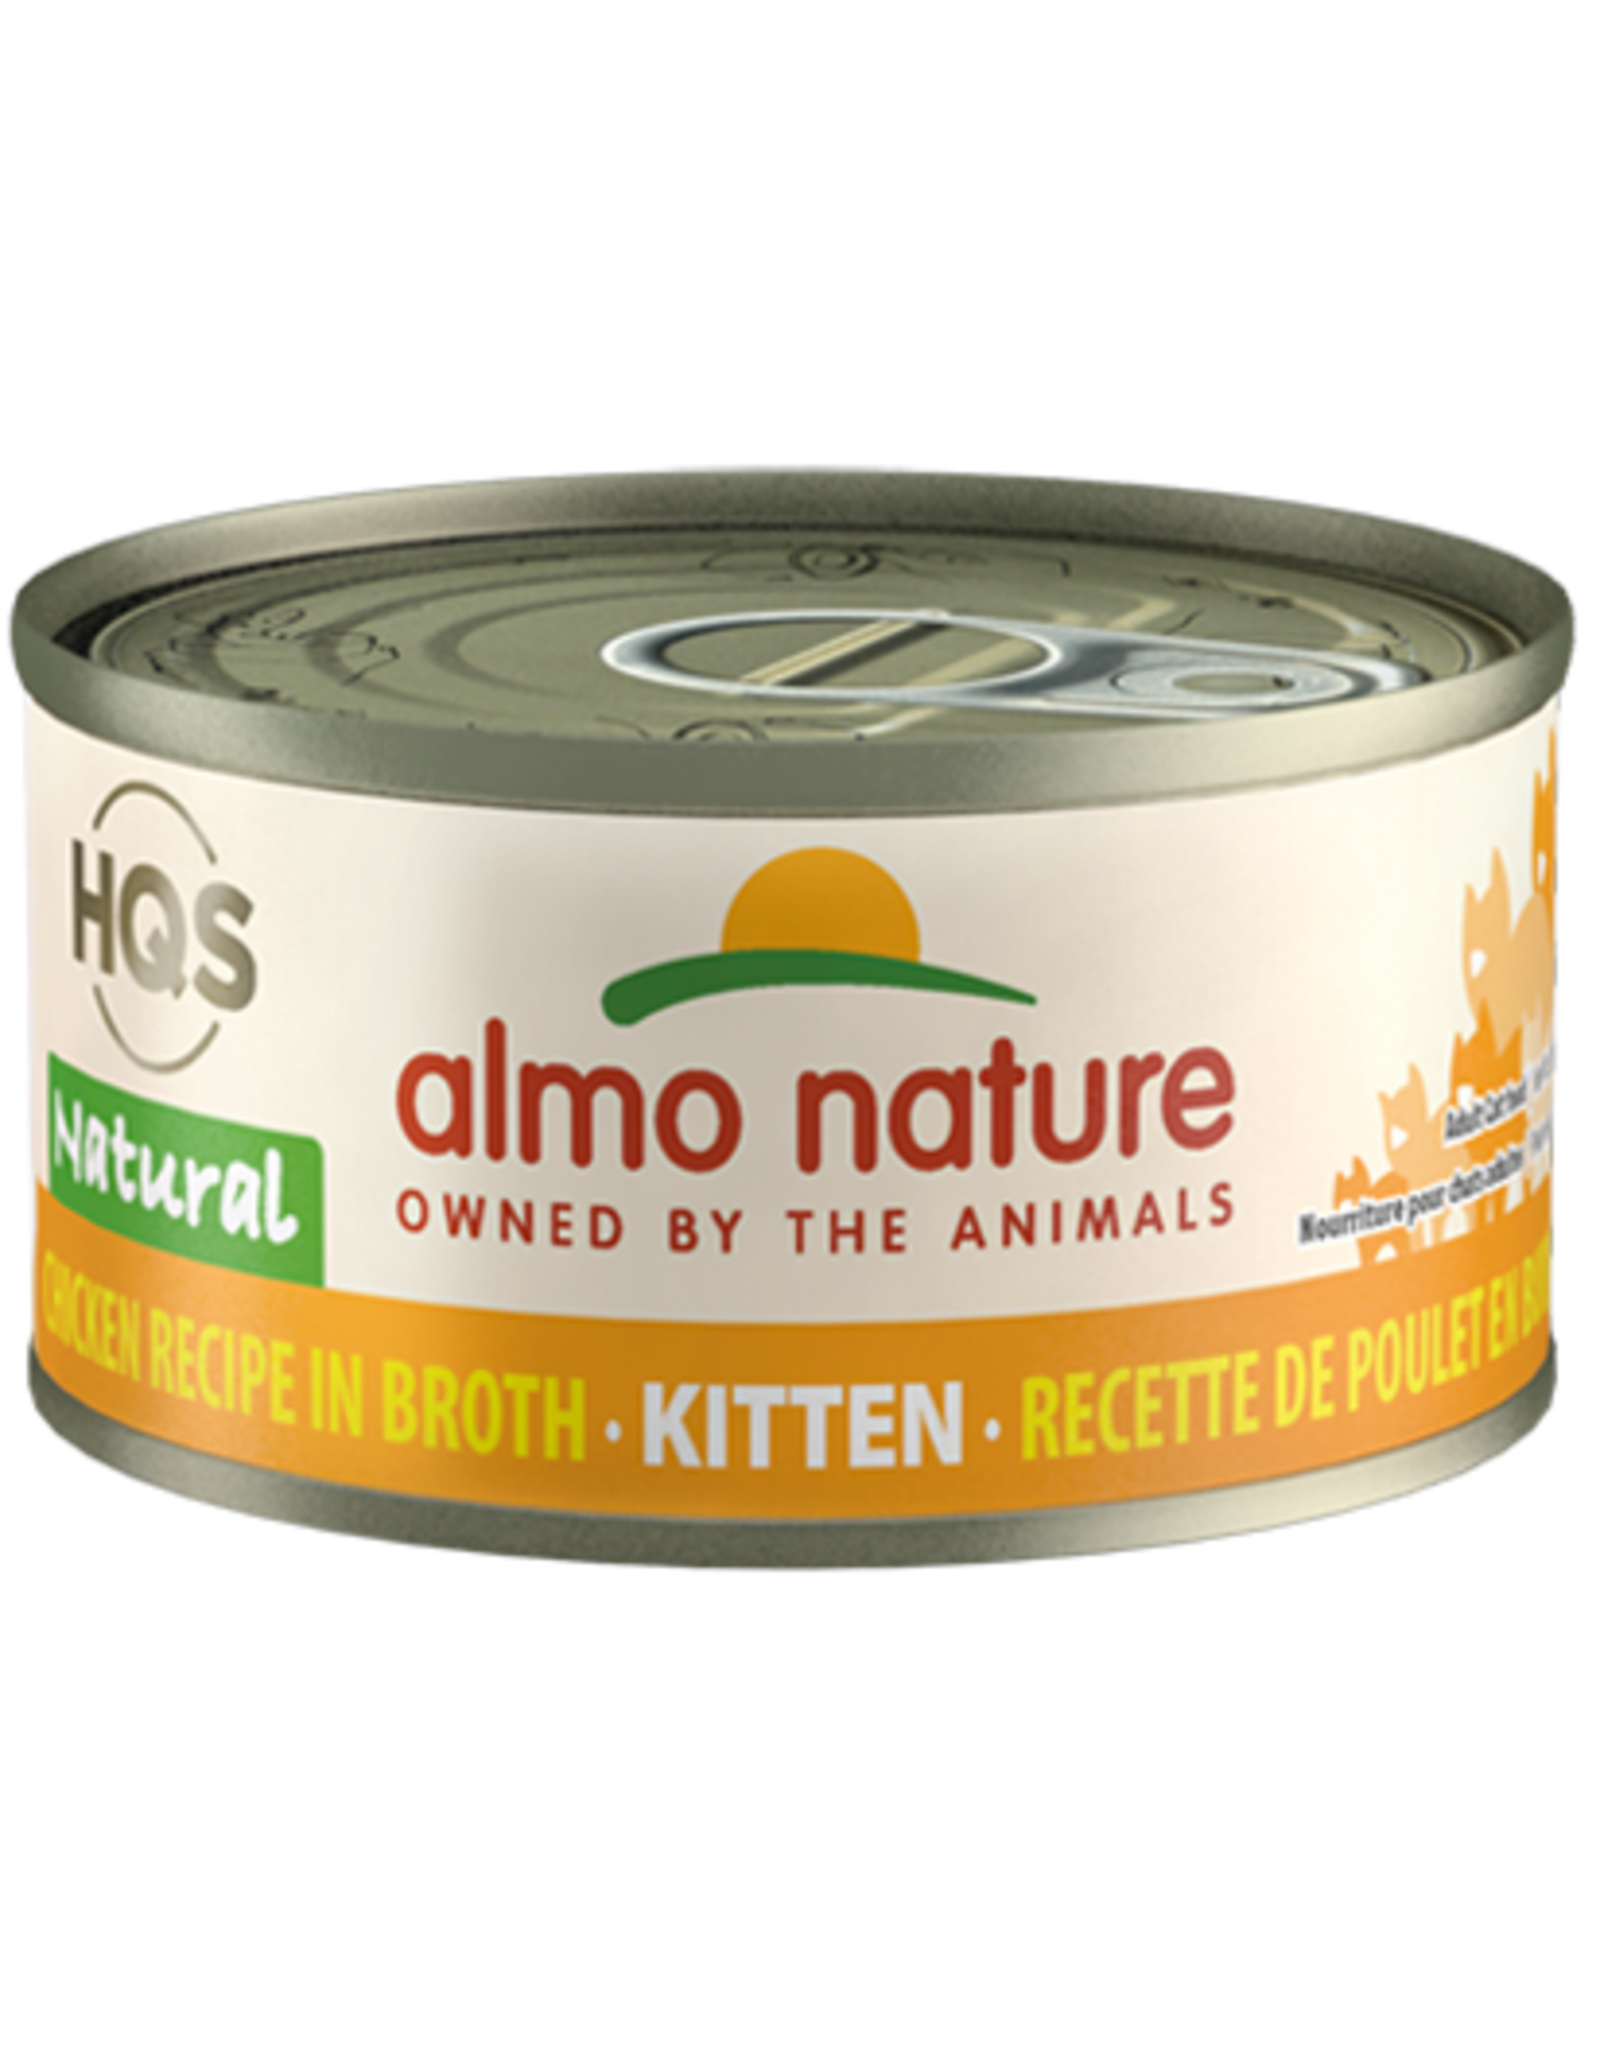 Almo Nature ALMO NATURE KITTEN HQS NATURAL CHICKEN RECIPE IN BROTH 2.47OZ